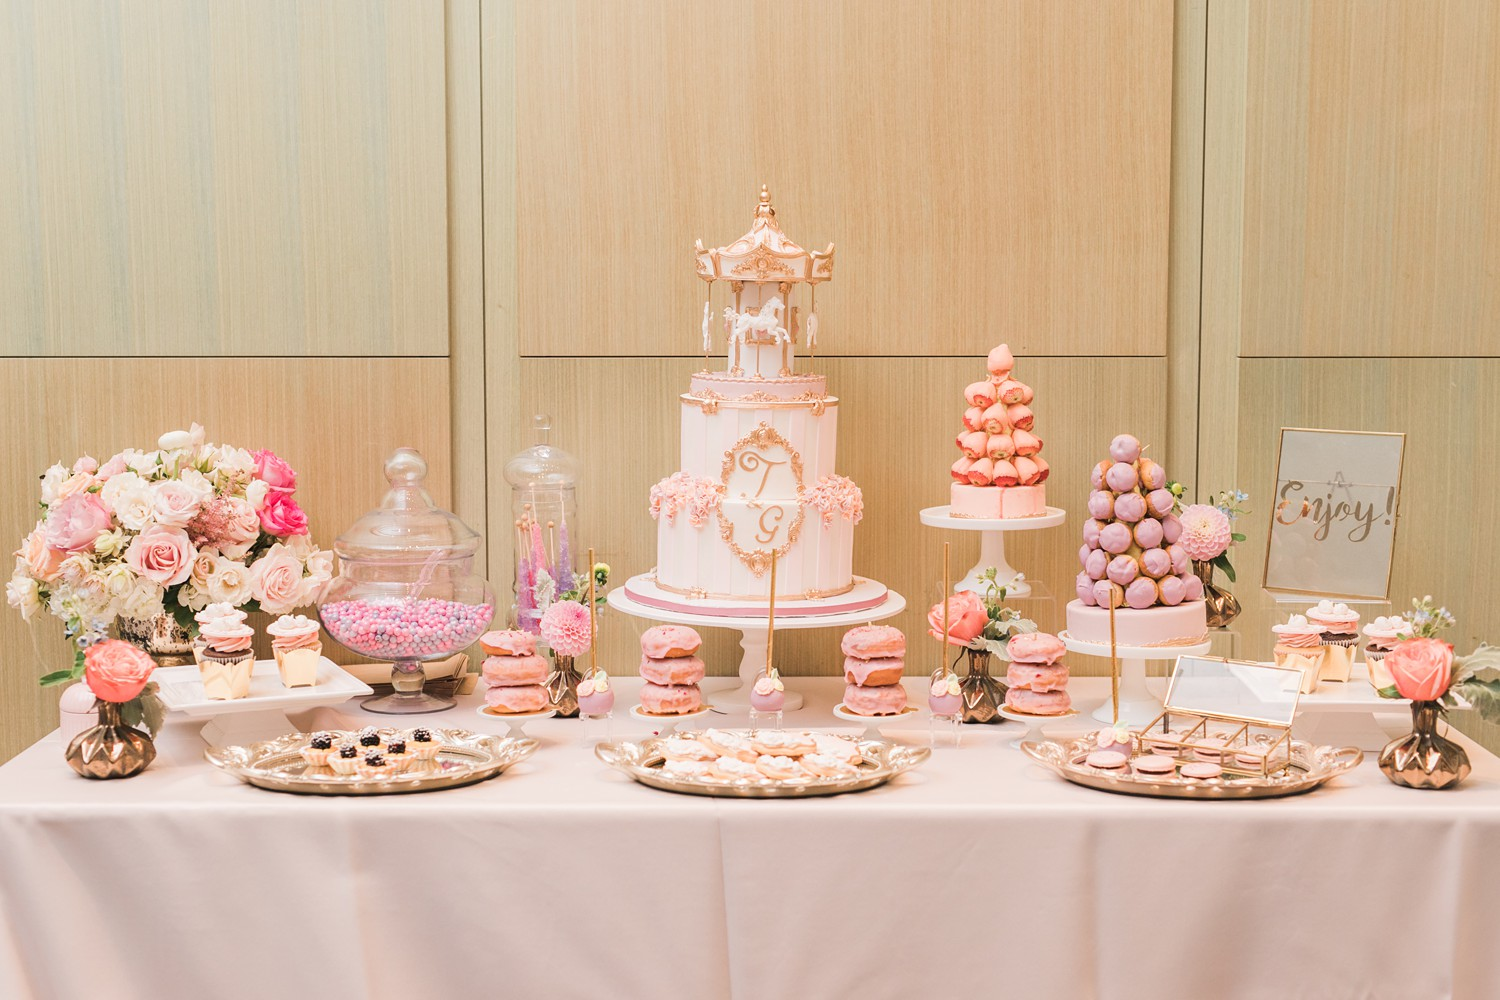 Dessert Table Vinci Room Luxury Yorkville Toronto Four Season Hotel Wedding Photos with Chinese Bride and Groom